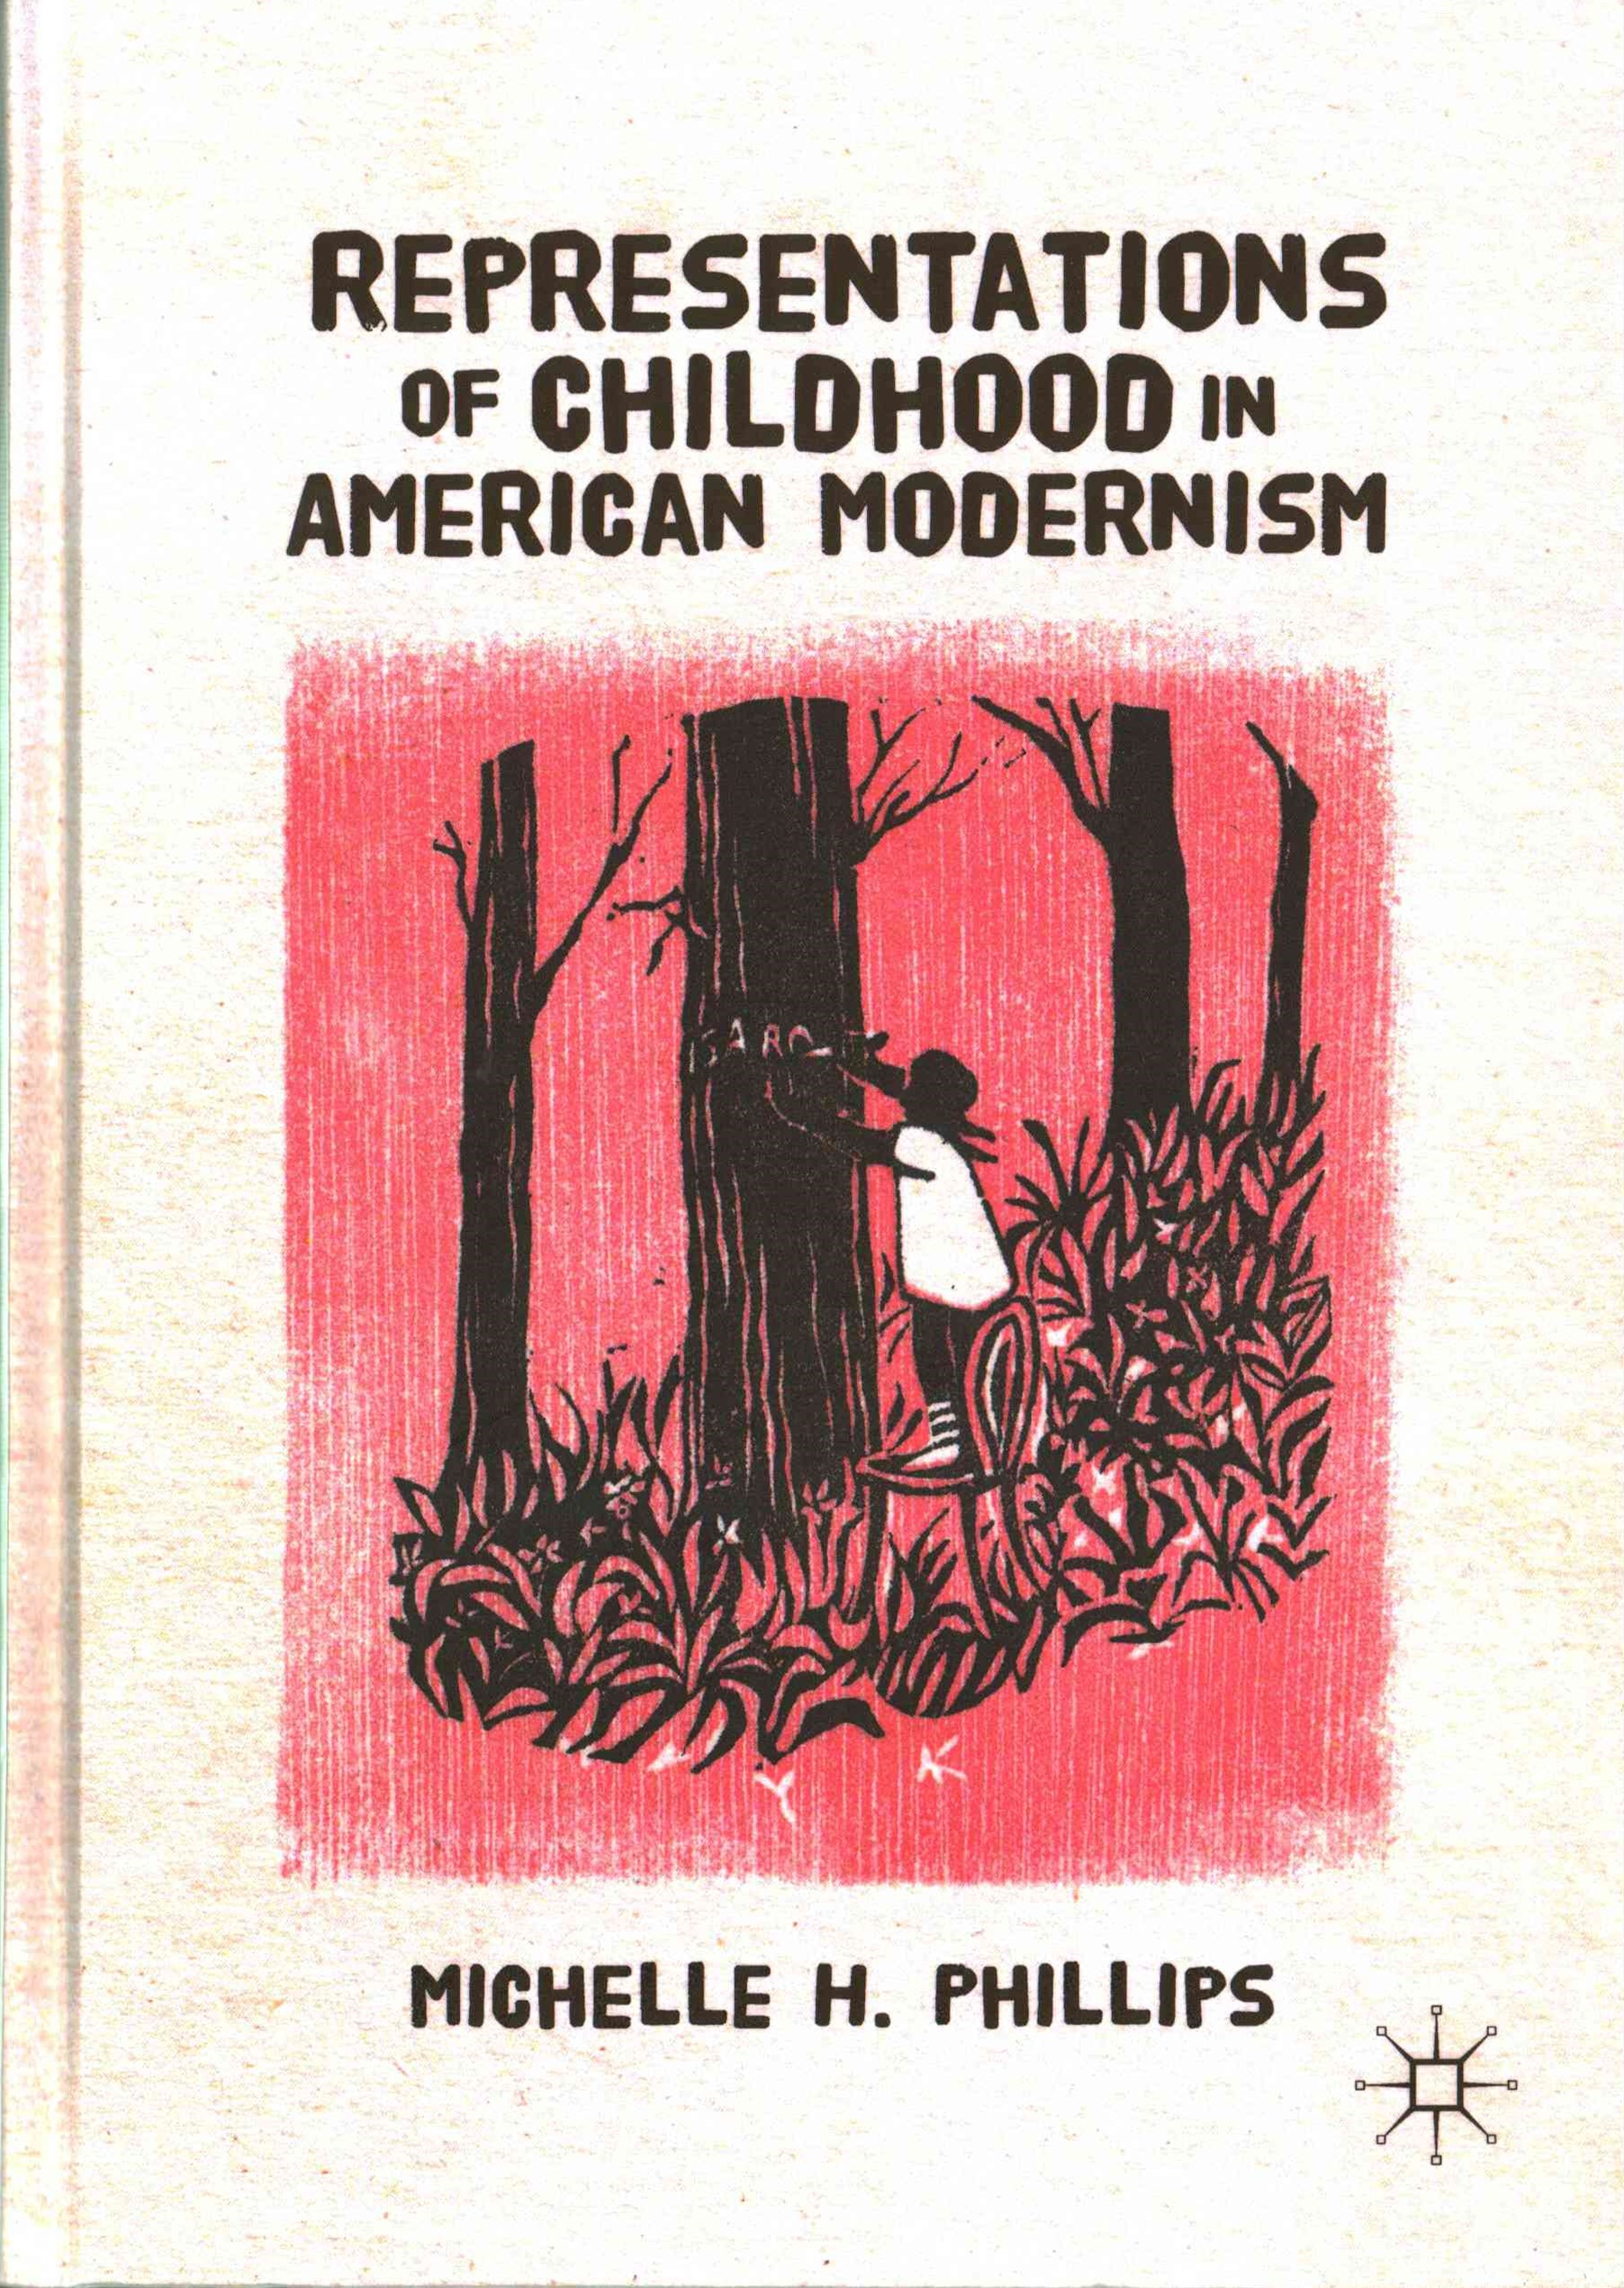 Representations of Childhood in American Modernism